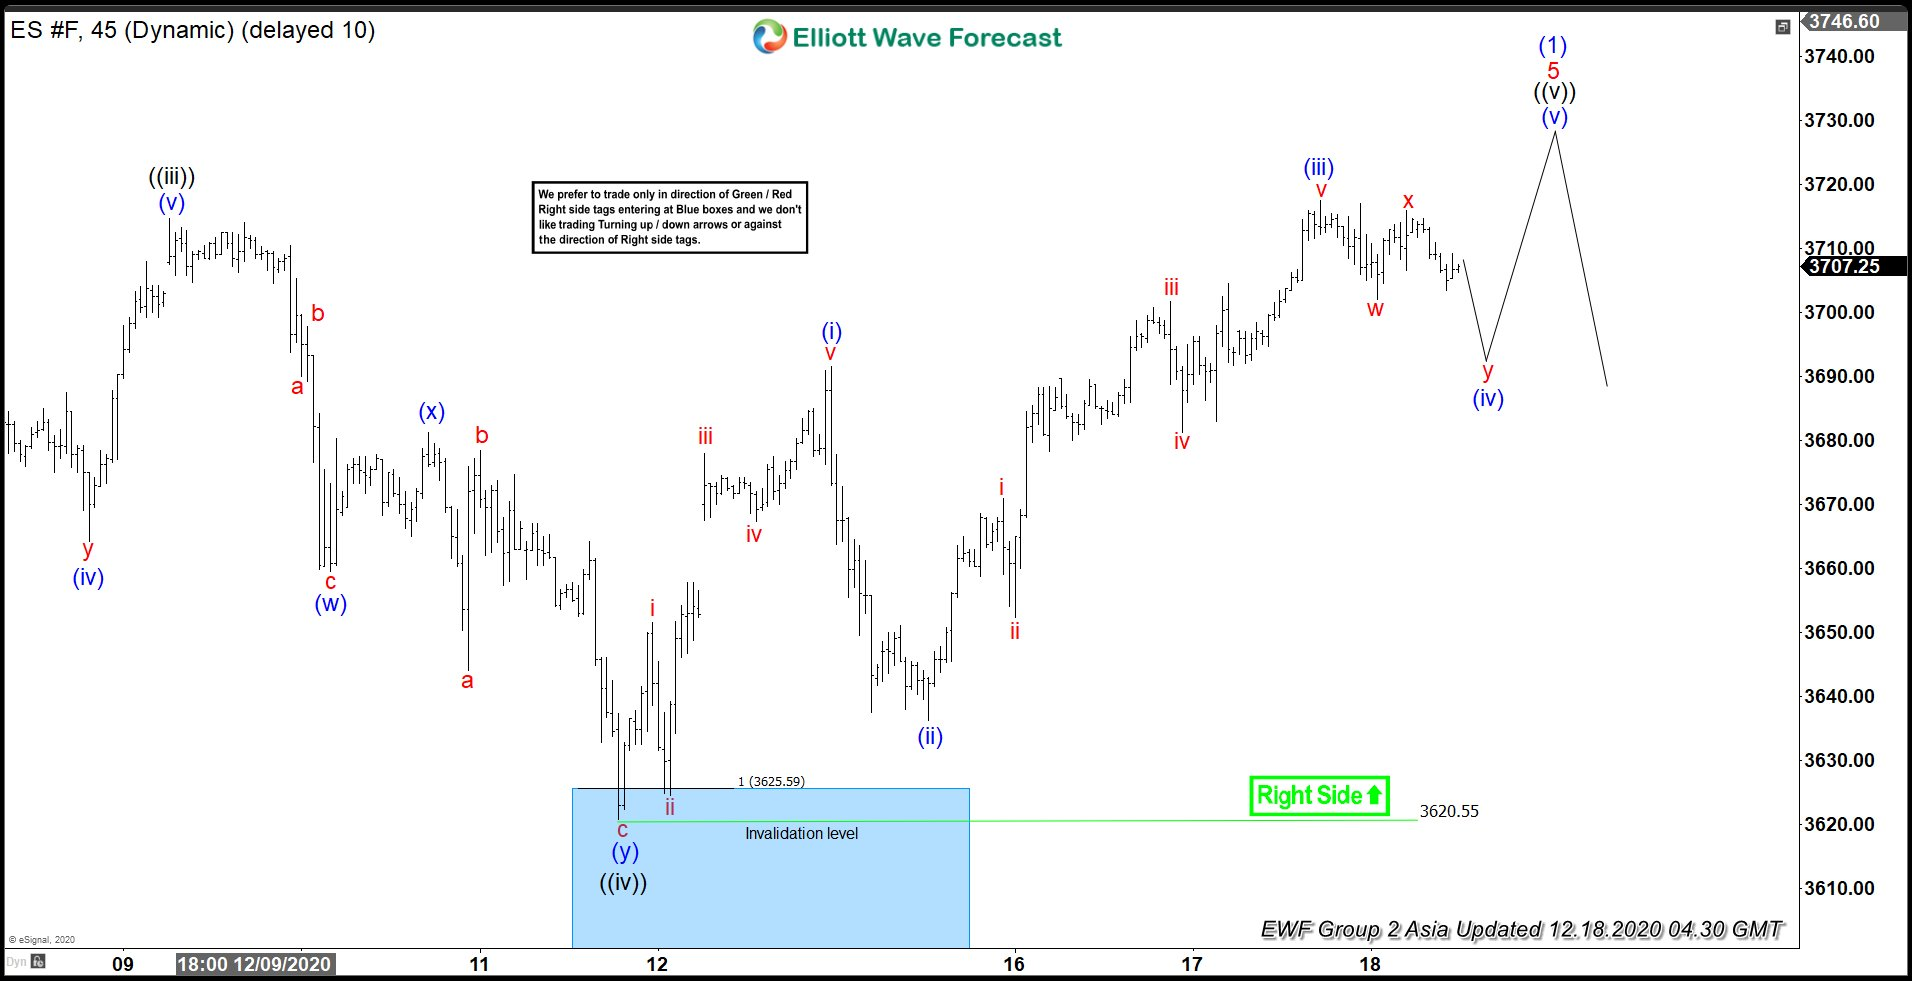 Elliott Wave View: S&P E Mini Futures (ES) Near Completing 5 Waves